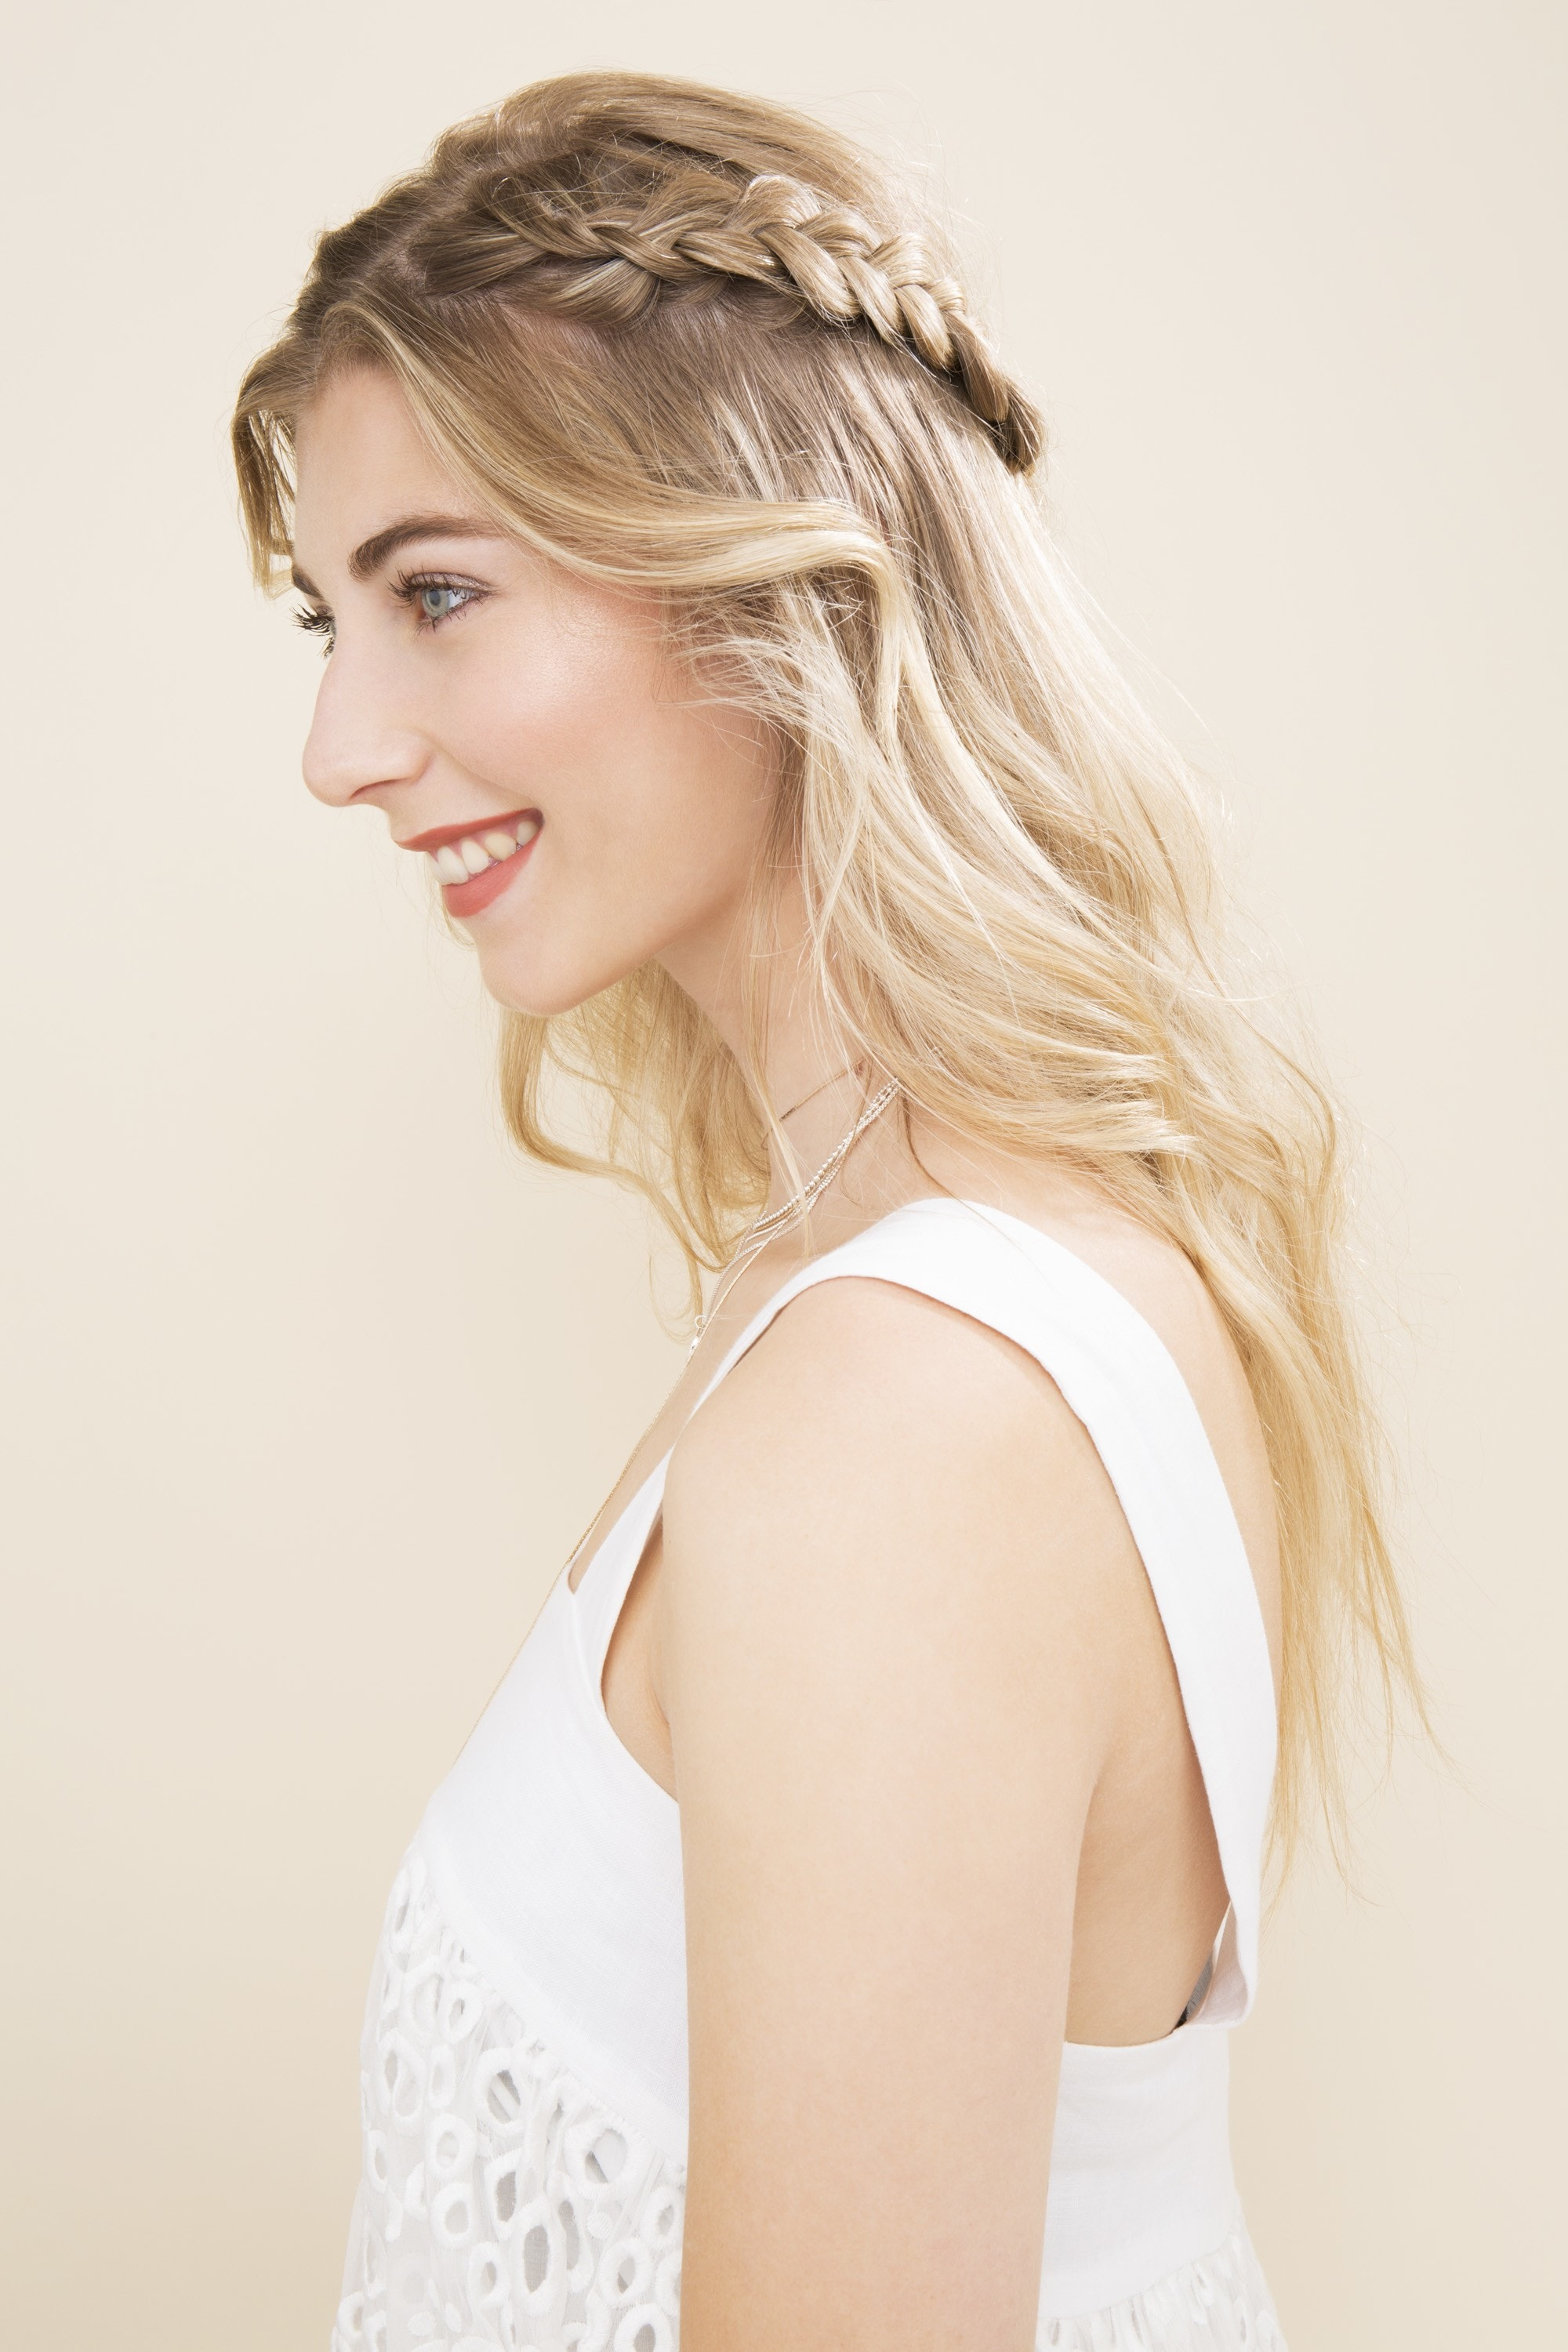 Boho hairstyles: Blonde with hair in a half-up crown braid with loose wavy ends